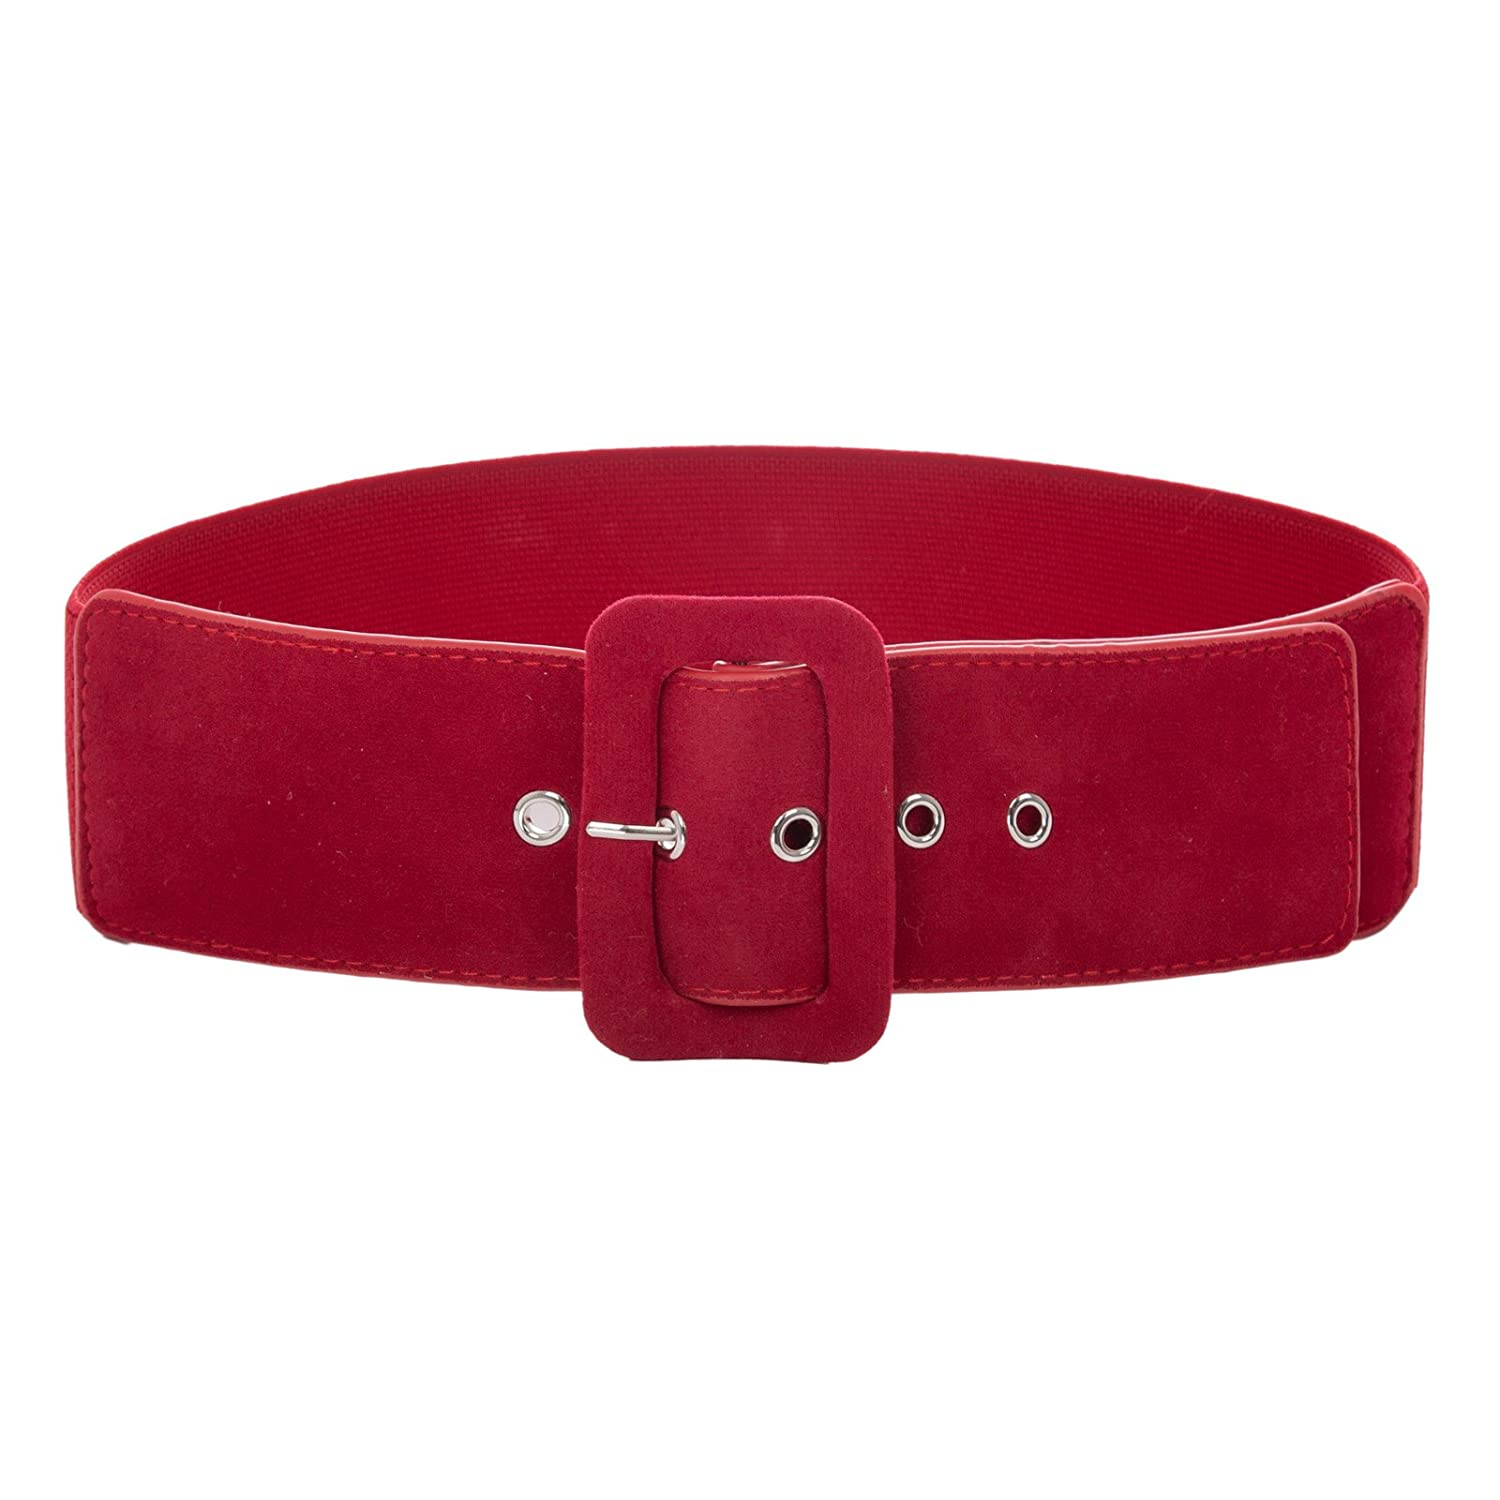 Belle Poque Ladies Vintage 2.36 Inches Wide Stretchy Belt Waistband GF751